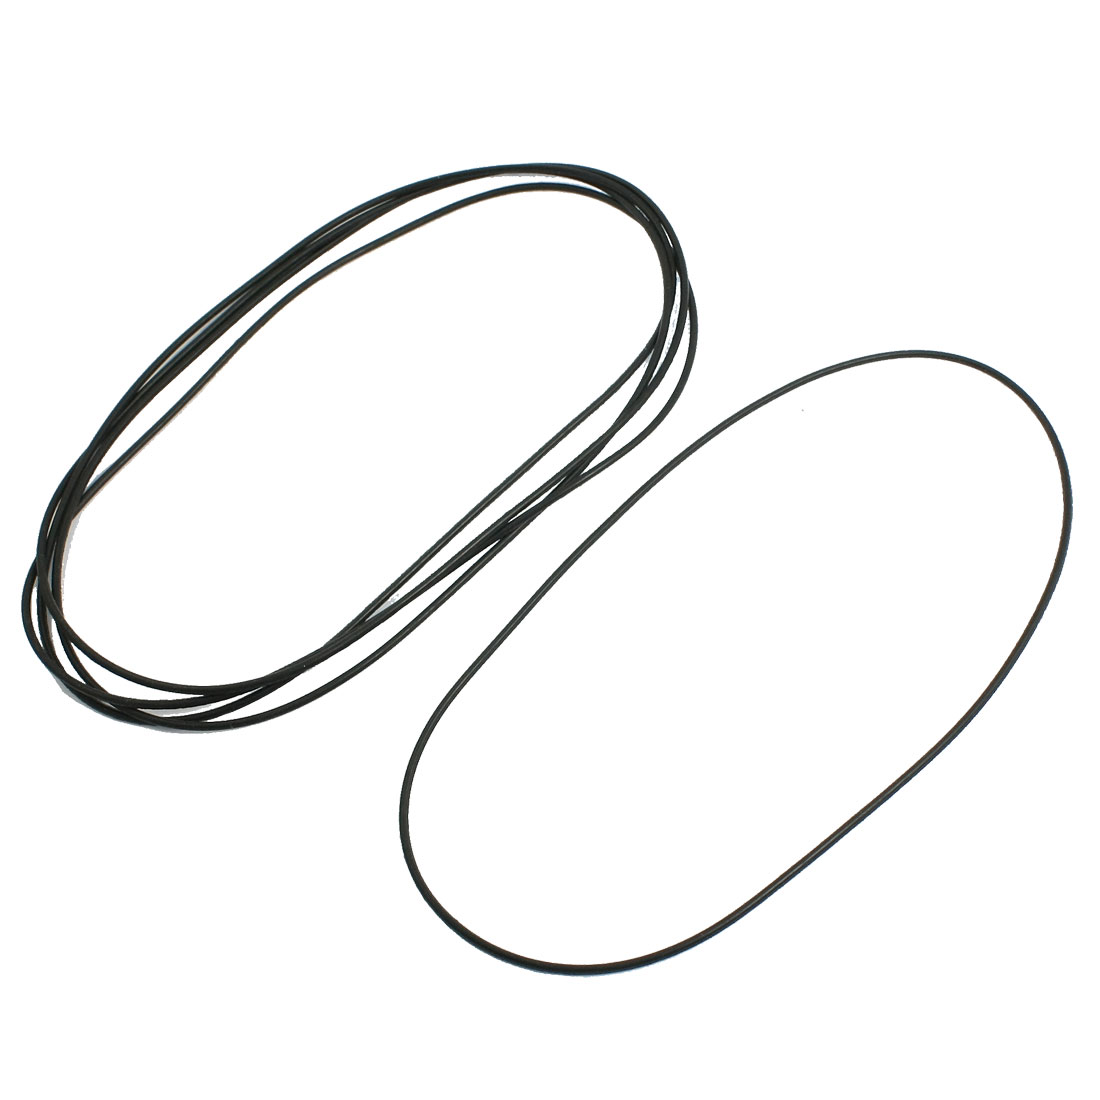 5 Pcs Oil Seal O Rings Black Nitrile Rubber 140mm OD 2mm Thickness